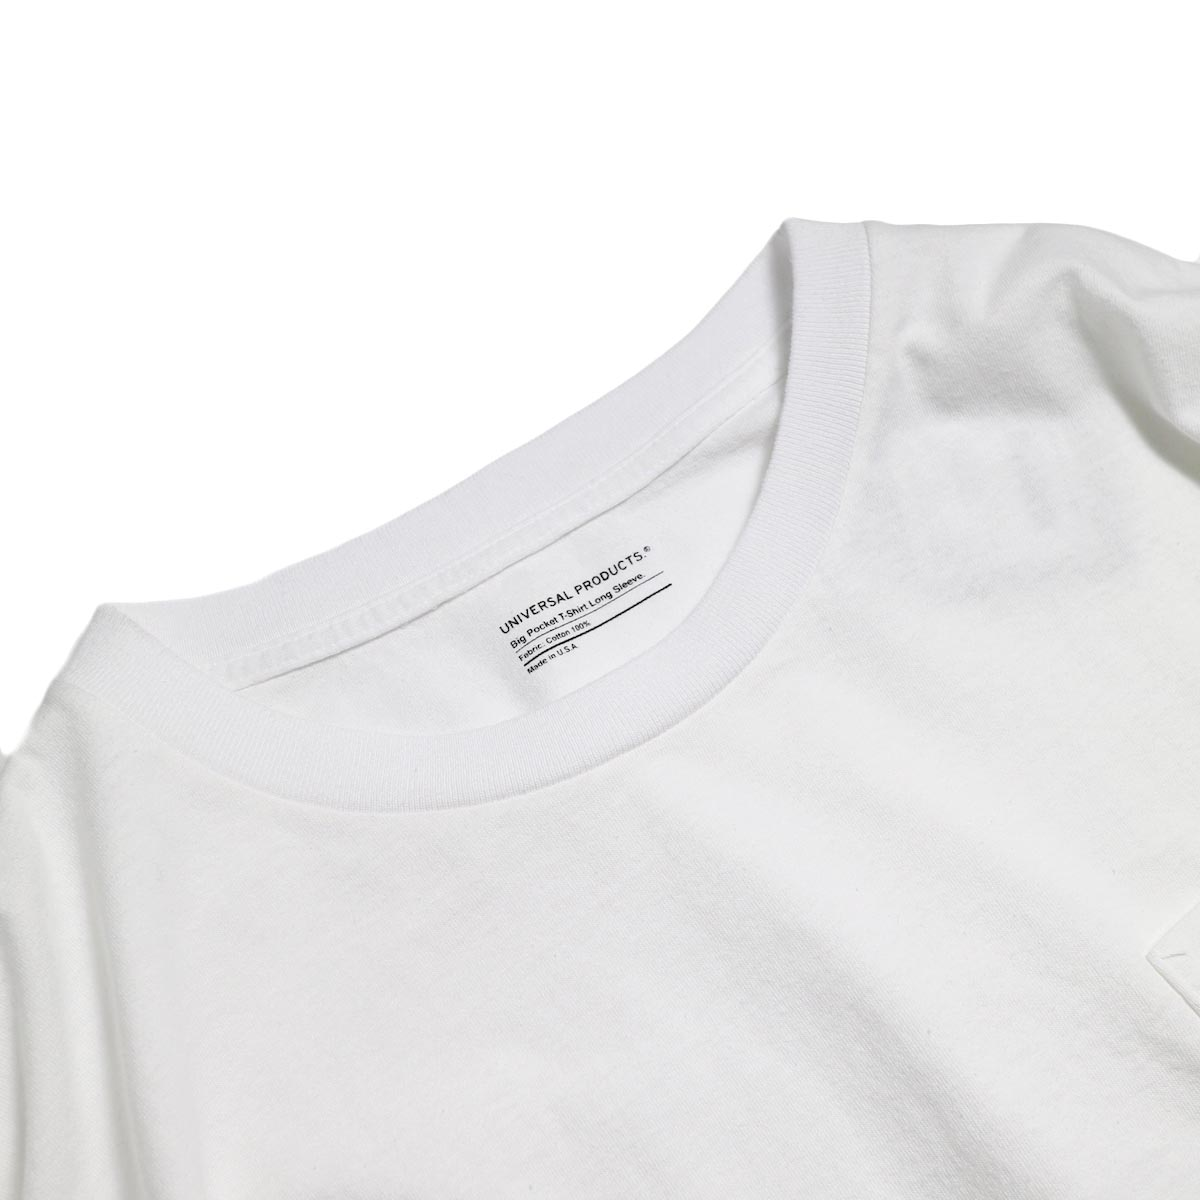 UNIVERSAL PRODUCTS / Heavy Weight L/S T-Shirt -White 首元